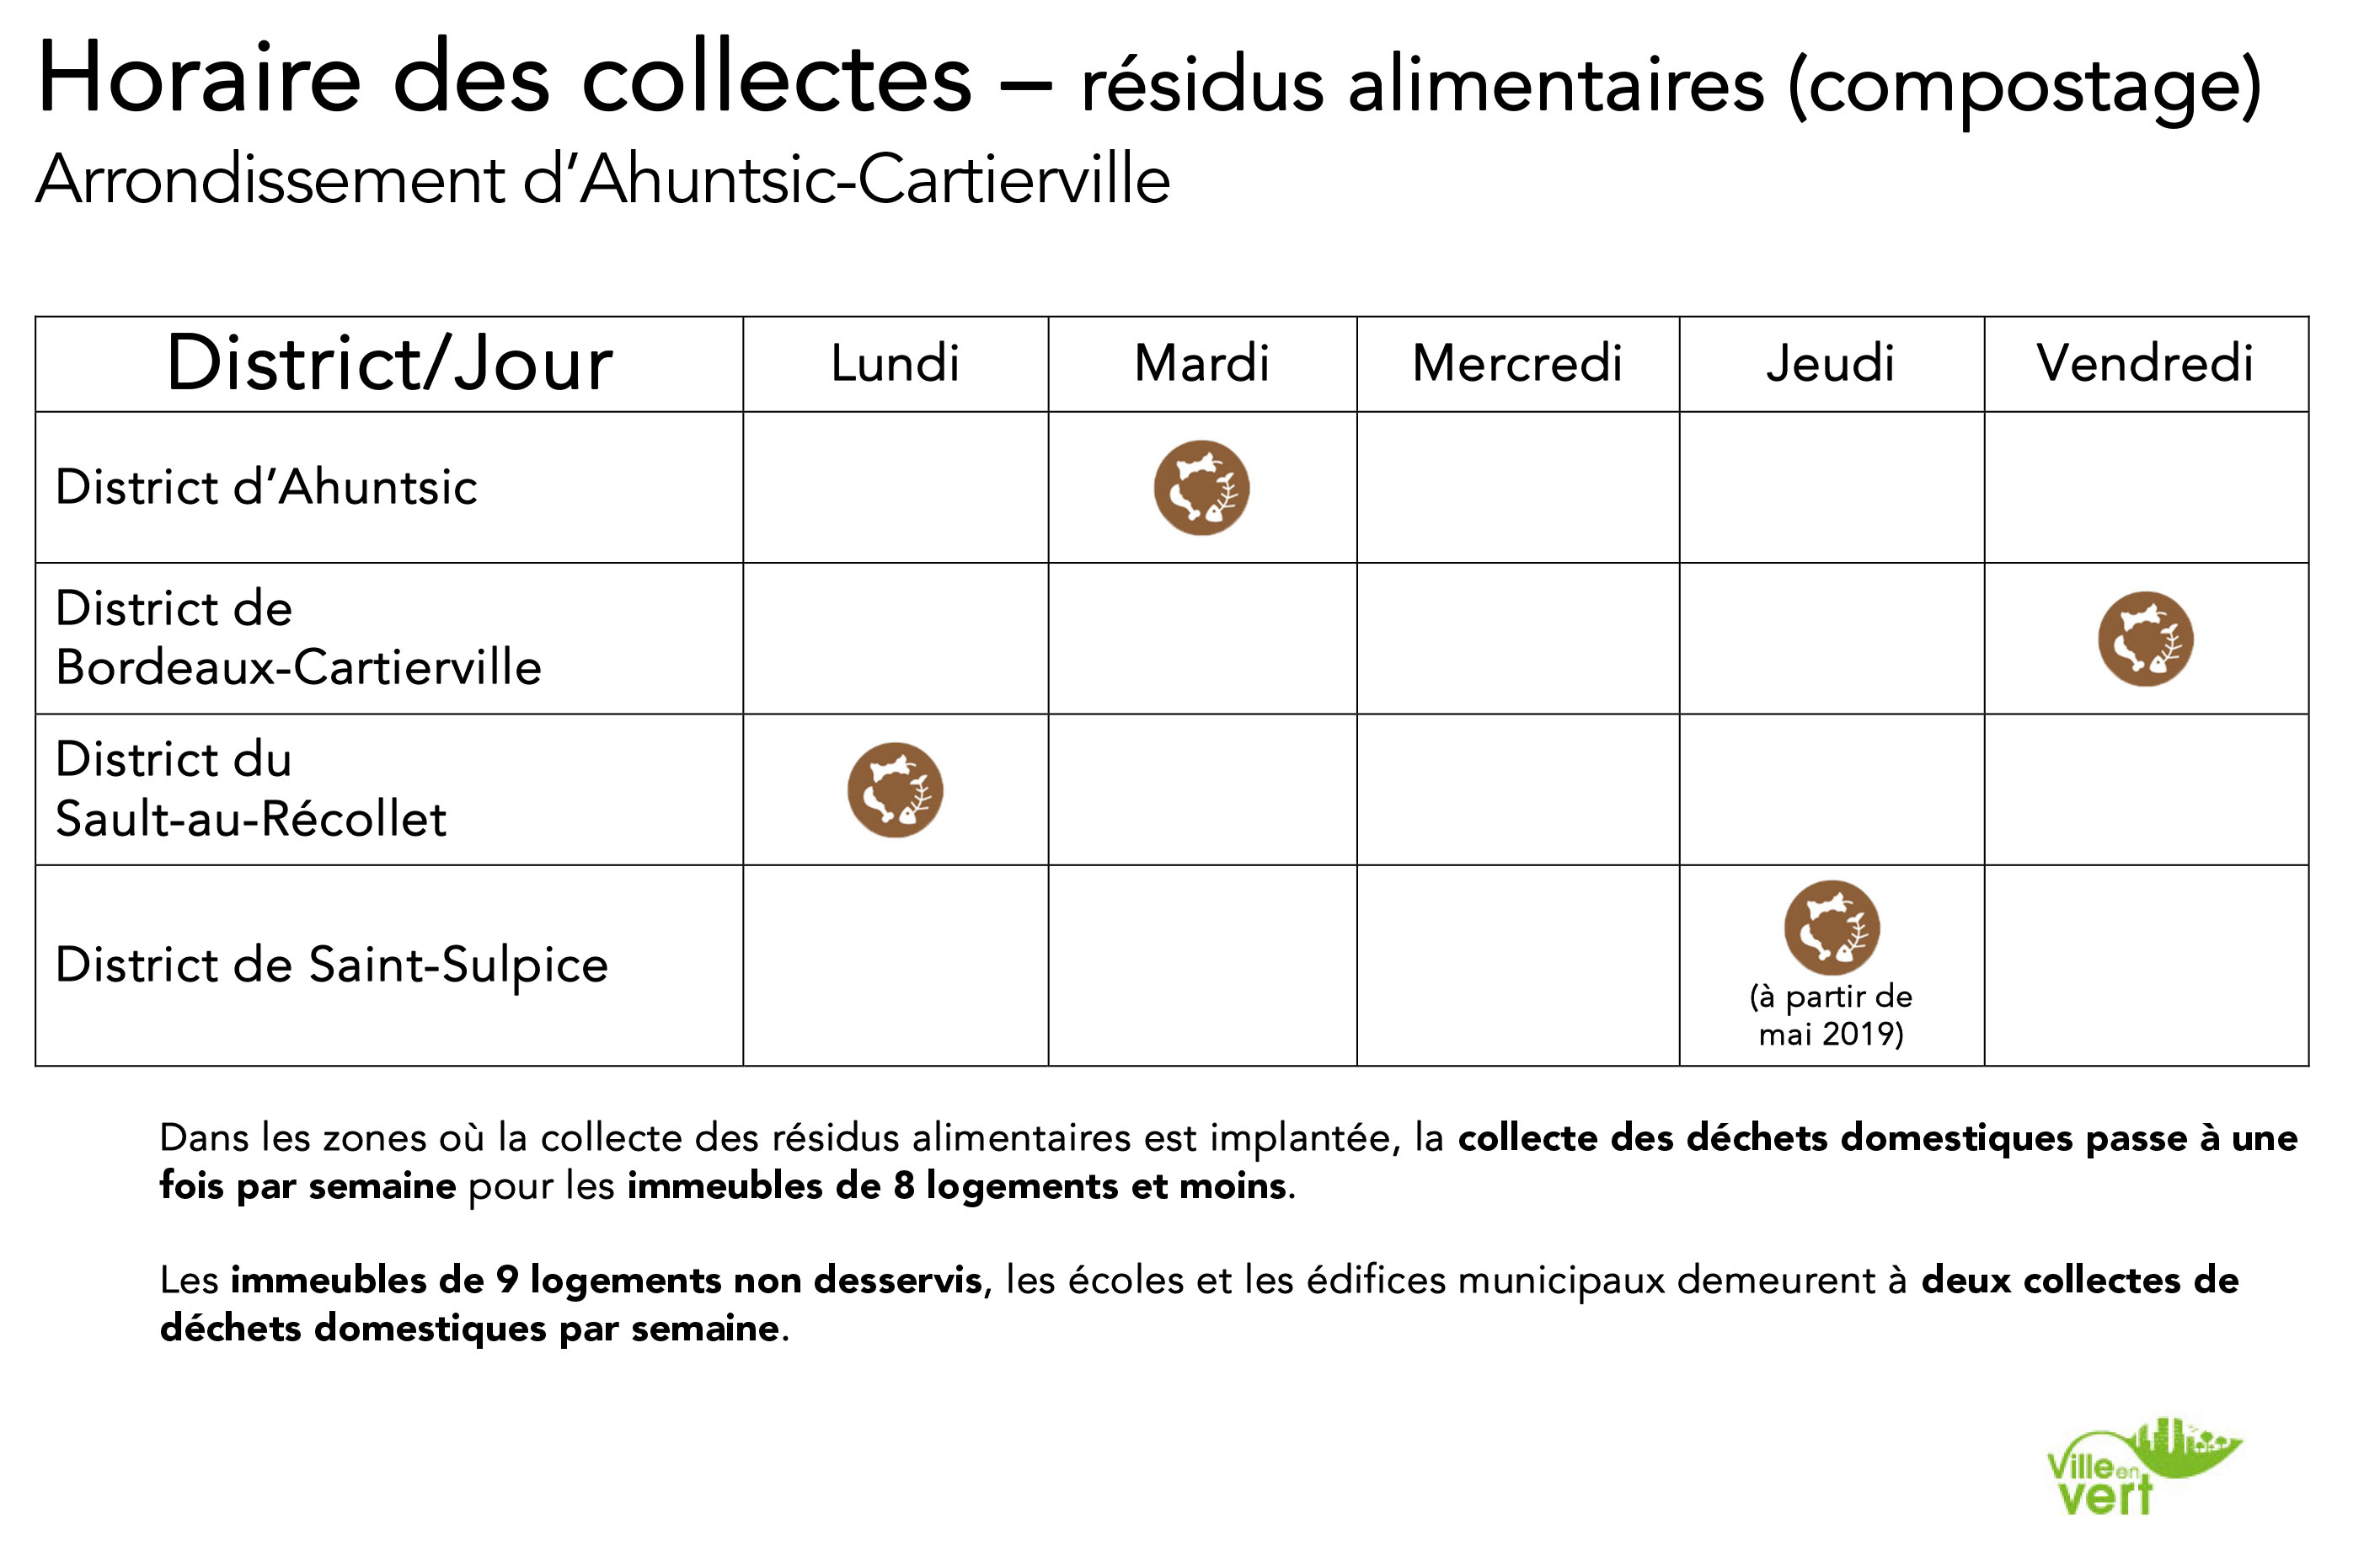 Horaire collectes - résidus alimentaires (compostage) - Ahuntsic-Cartierville